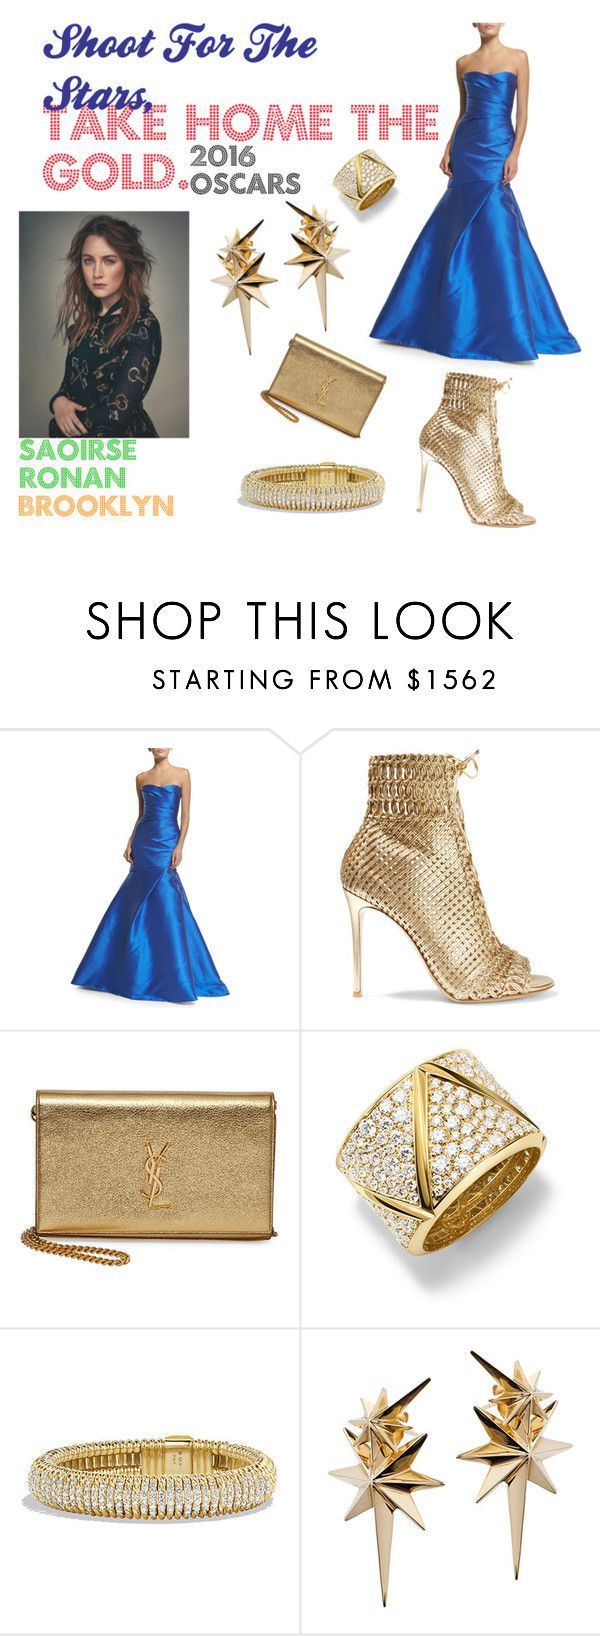 """Saoirse Ronan For The Oscars 2016"" by thecannibalking ❤ liked on Polyvore featuring Monique Lhuillier, Gianvito Rossi, Yves Saint Laurent, Marina B, David Yurman, Ludevine, SaoirseRonan, spring2016 and oscarsfasion"